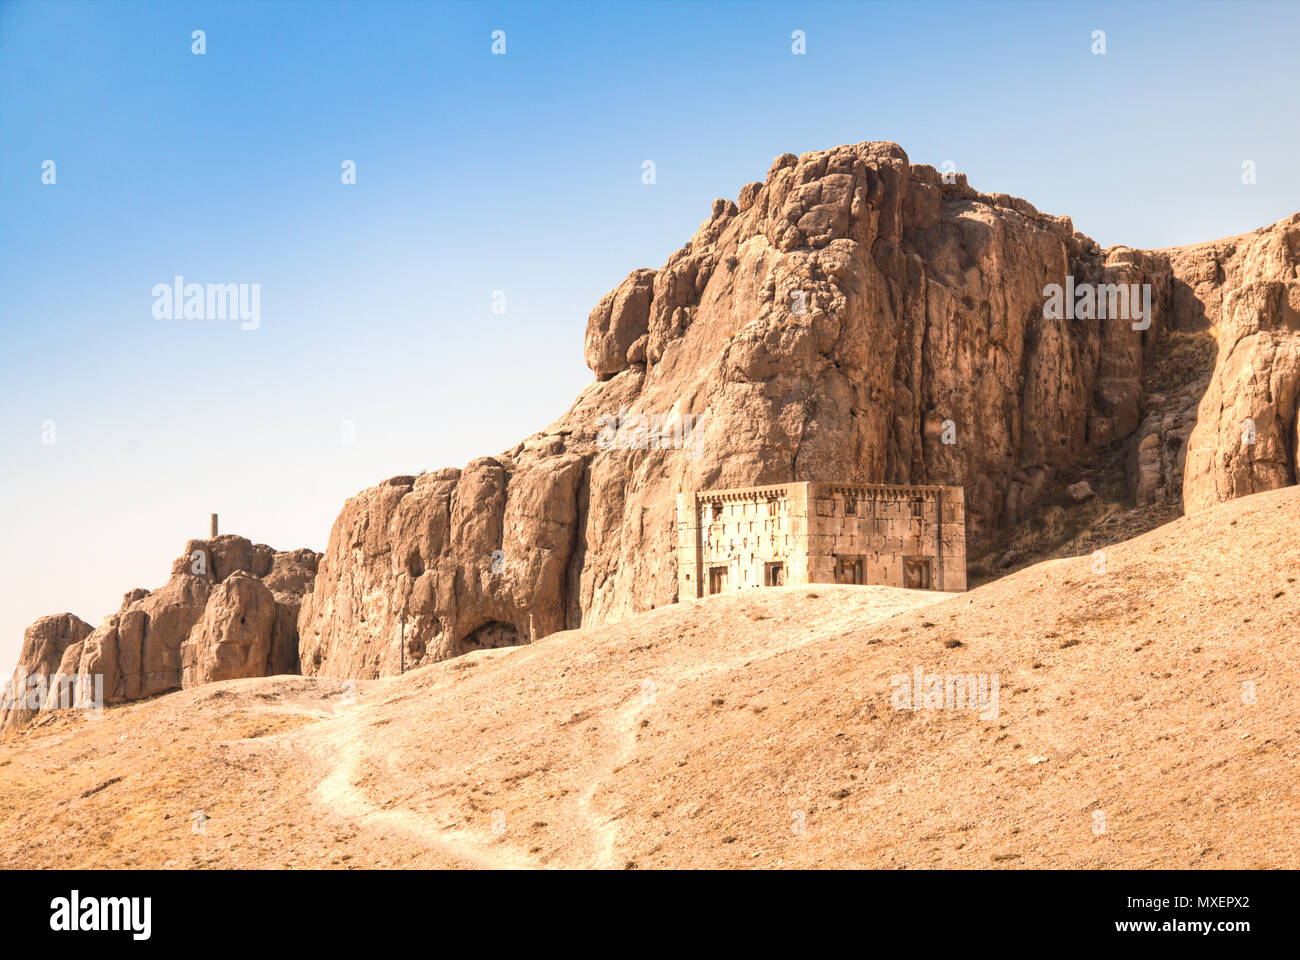 The Ancient city Persepolis was once the capital of the Achaemenid empire and is now UNESCO heritage. The site can be found near Shiraz in Iran - Stock Image